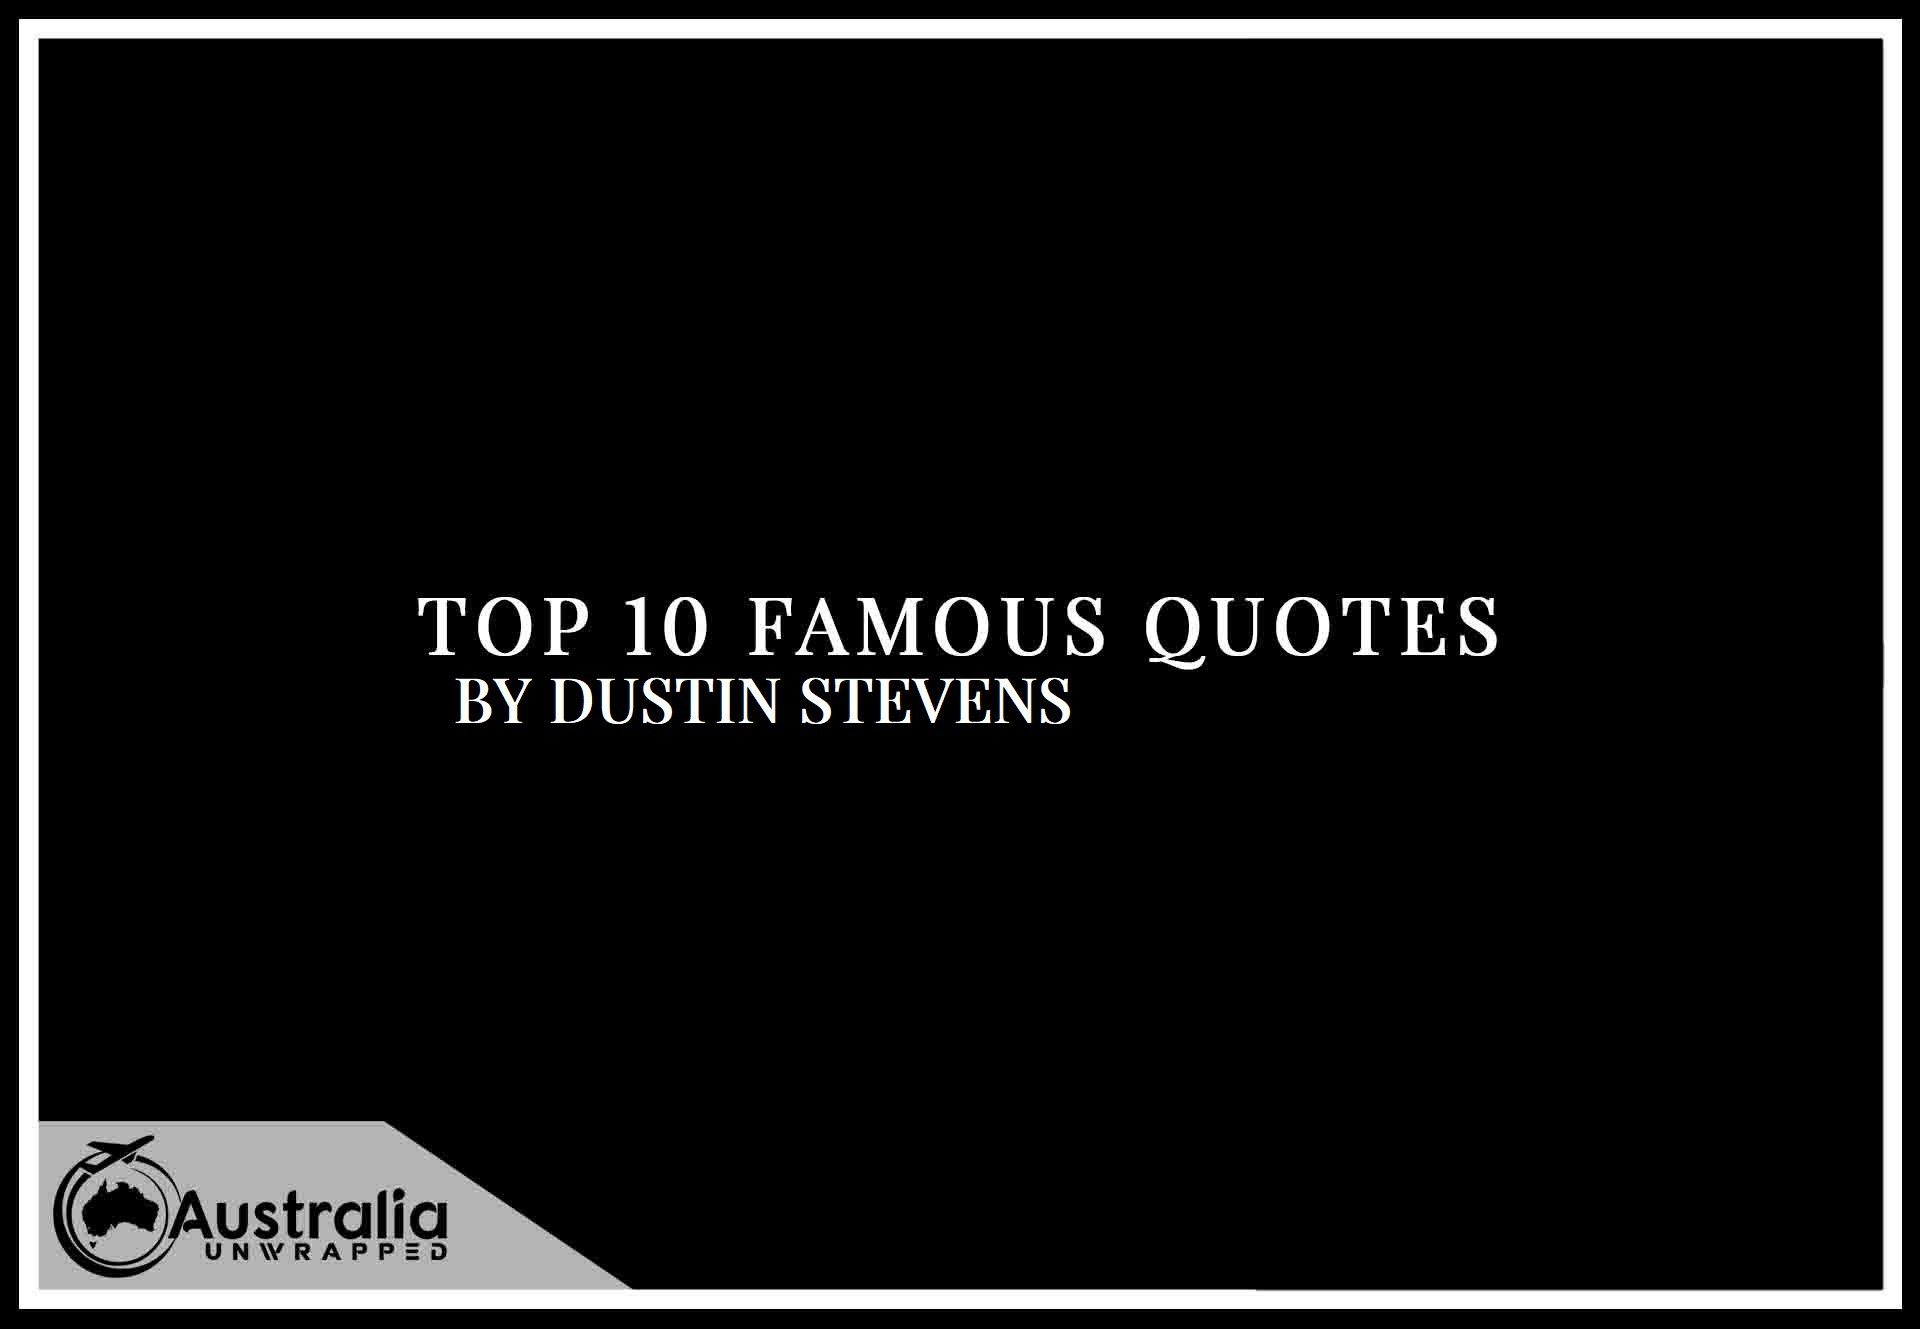 Top 10 Famous Quotes by Author Dustin Stevens